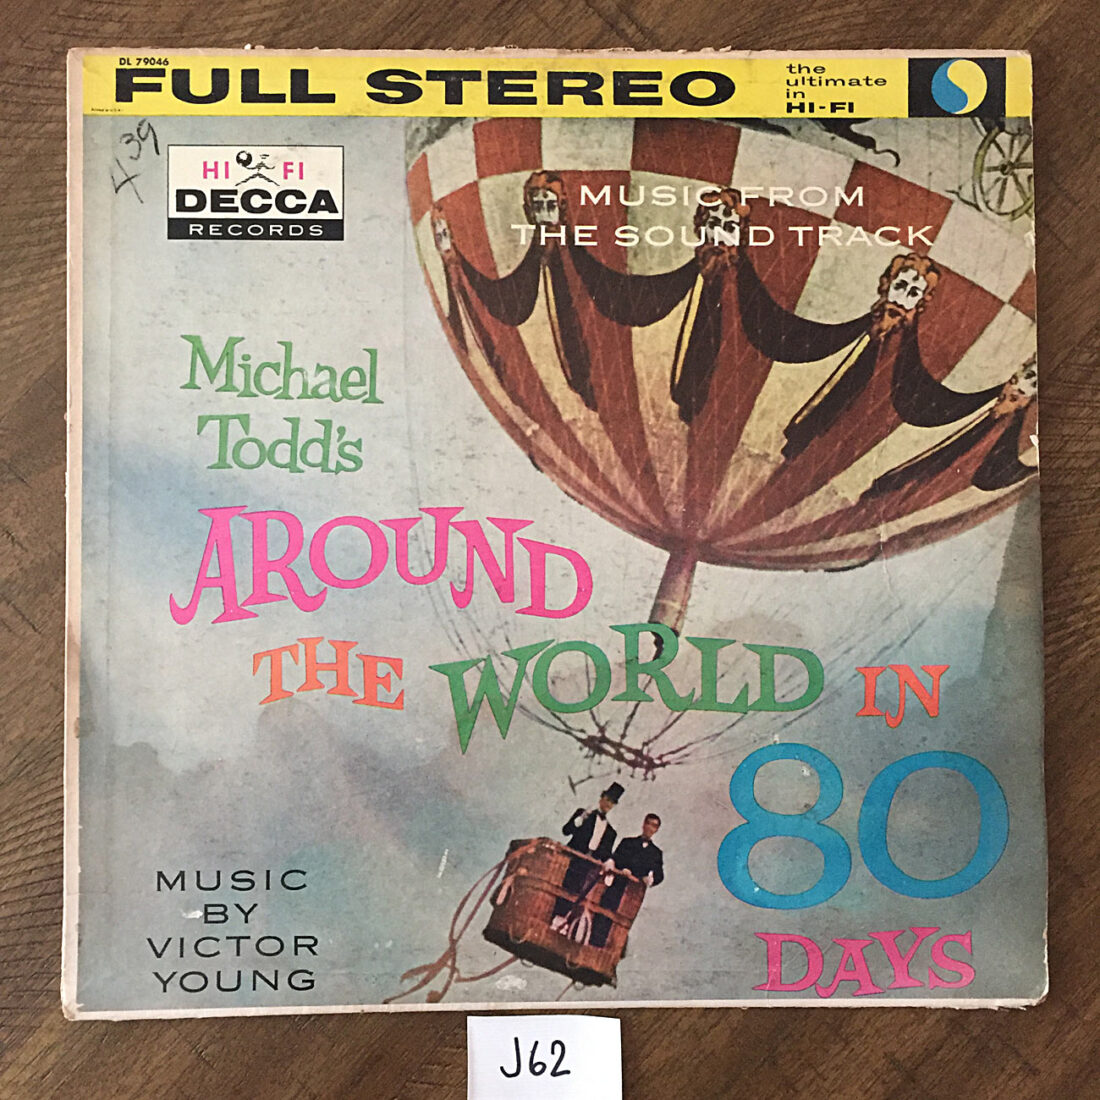 Michael Todd's Around the World in 80 Days Music Soundtrack by Victor Young Original Vinyl Edition (DL79046) [J62]